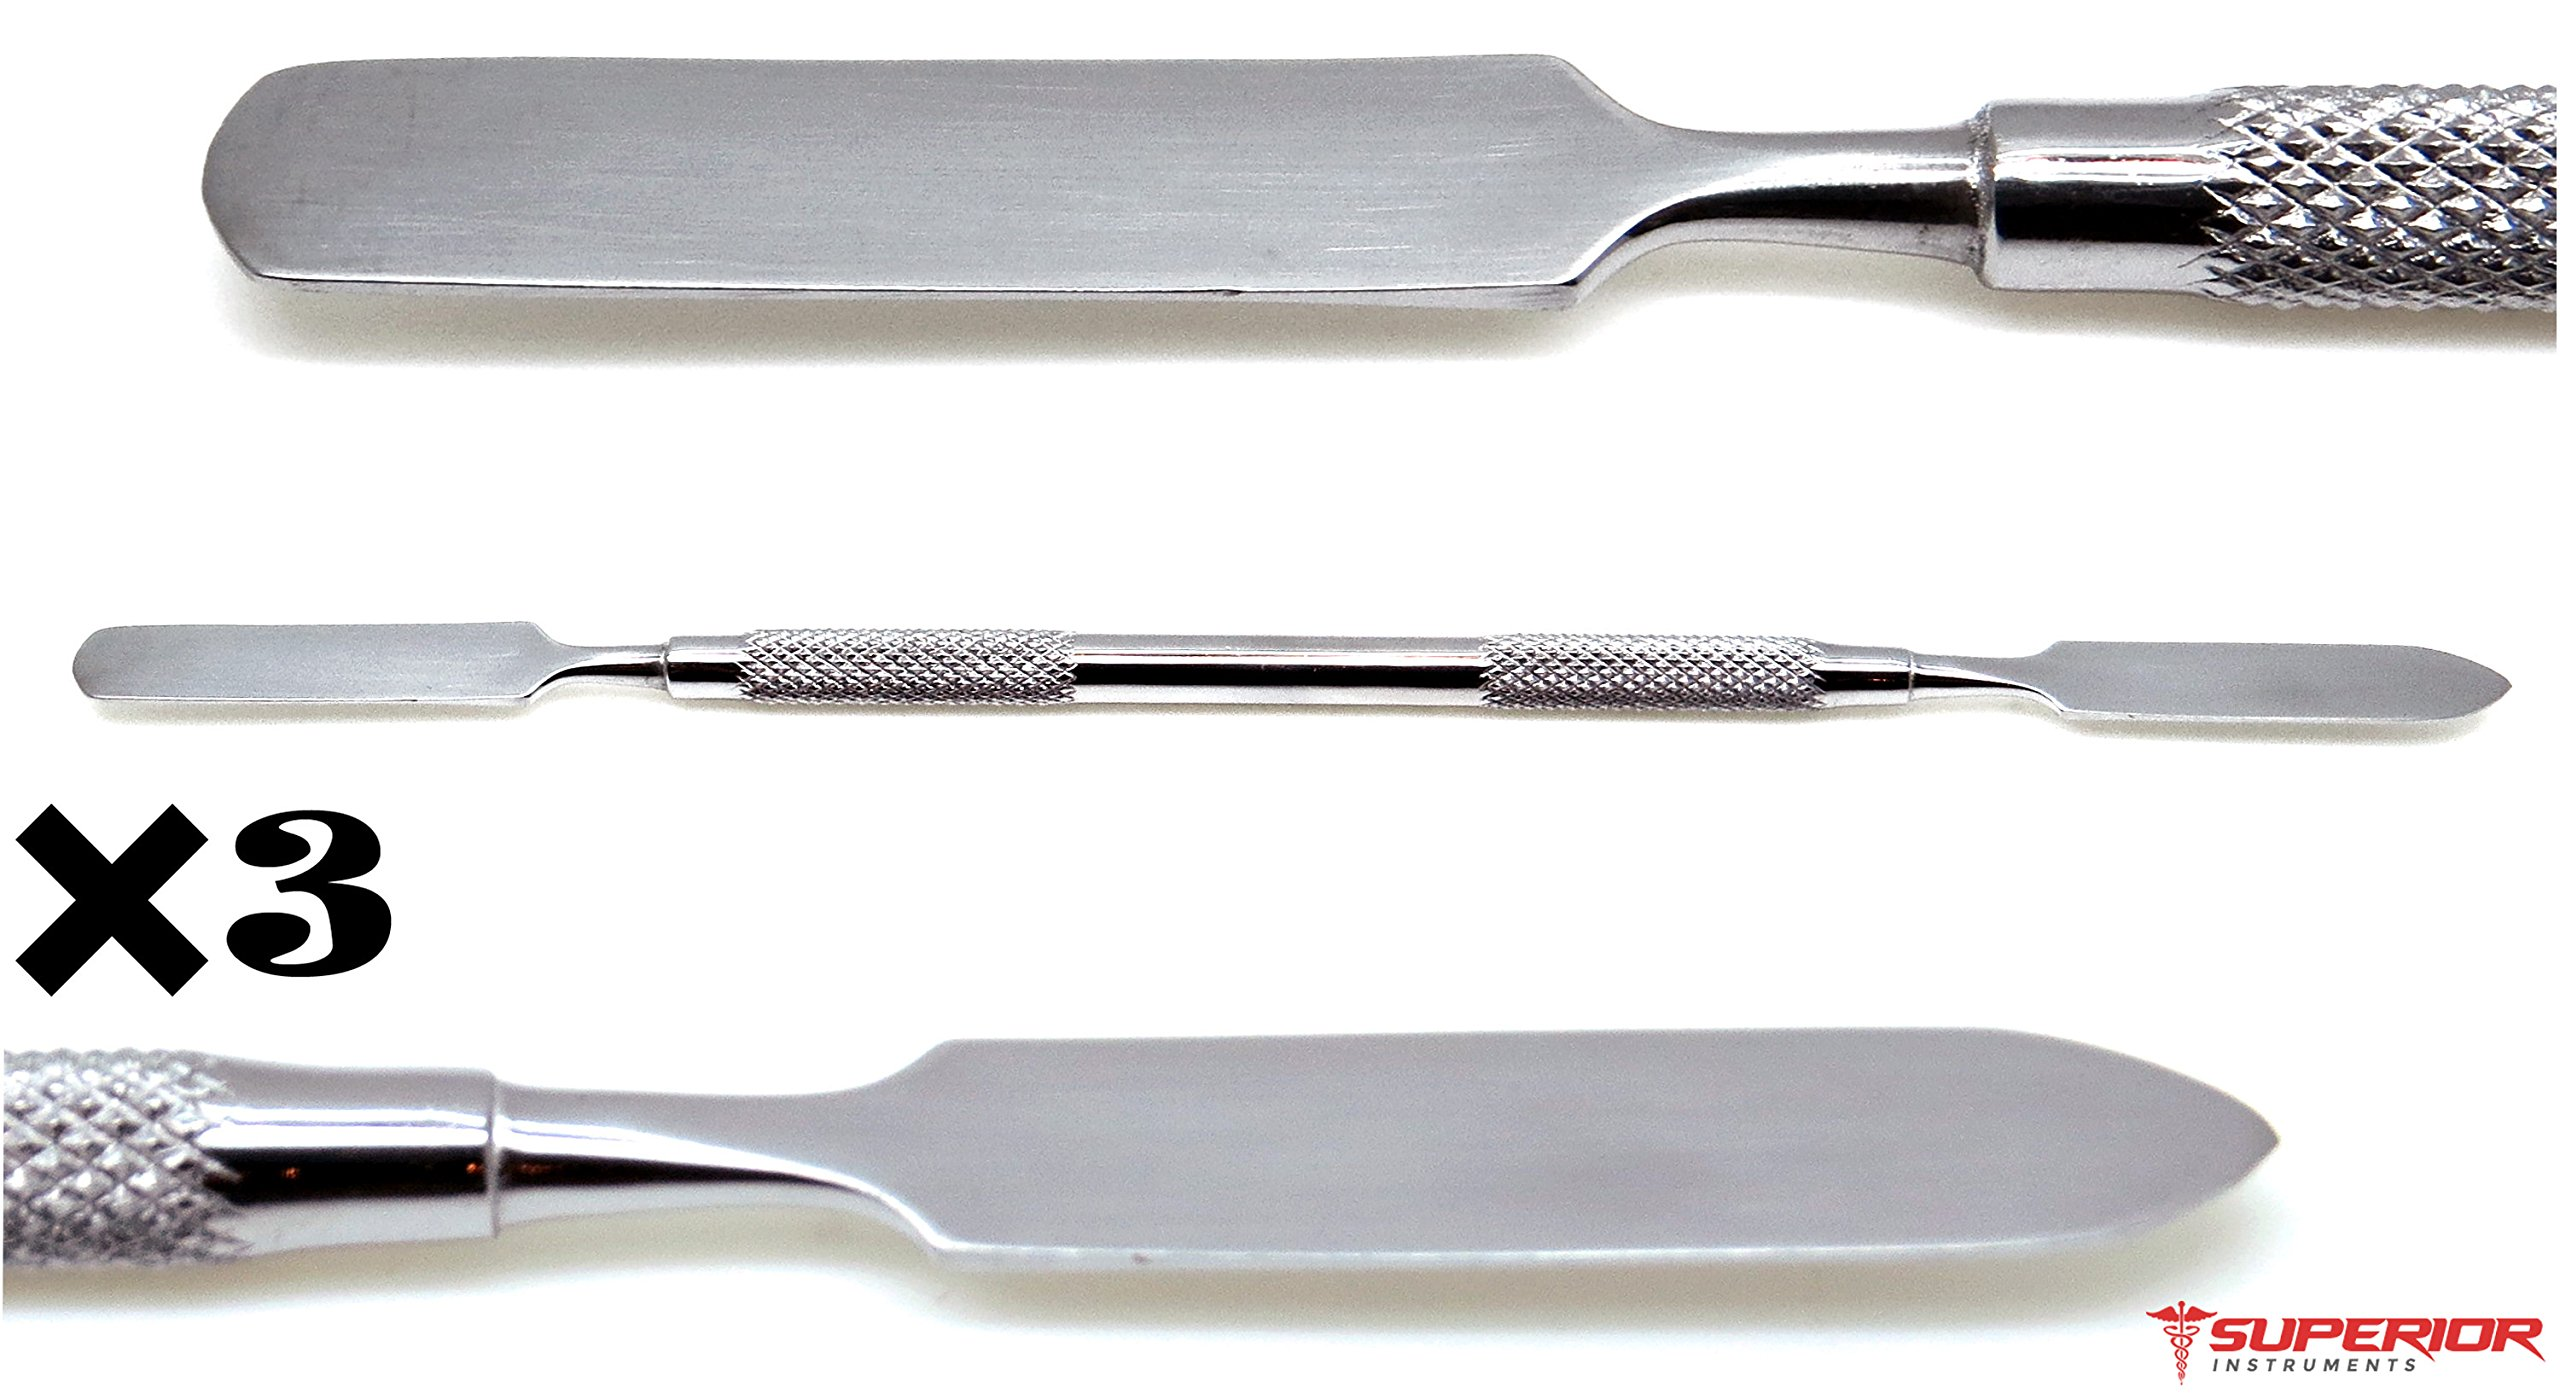 Dental Cement Spatula Double Ended Wax Mixing Carvers Stainless Steel Lab 3 Pieces Instruments